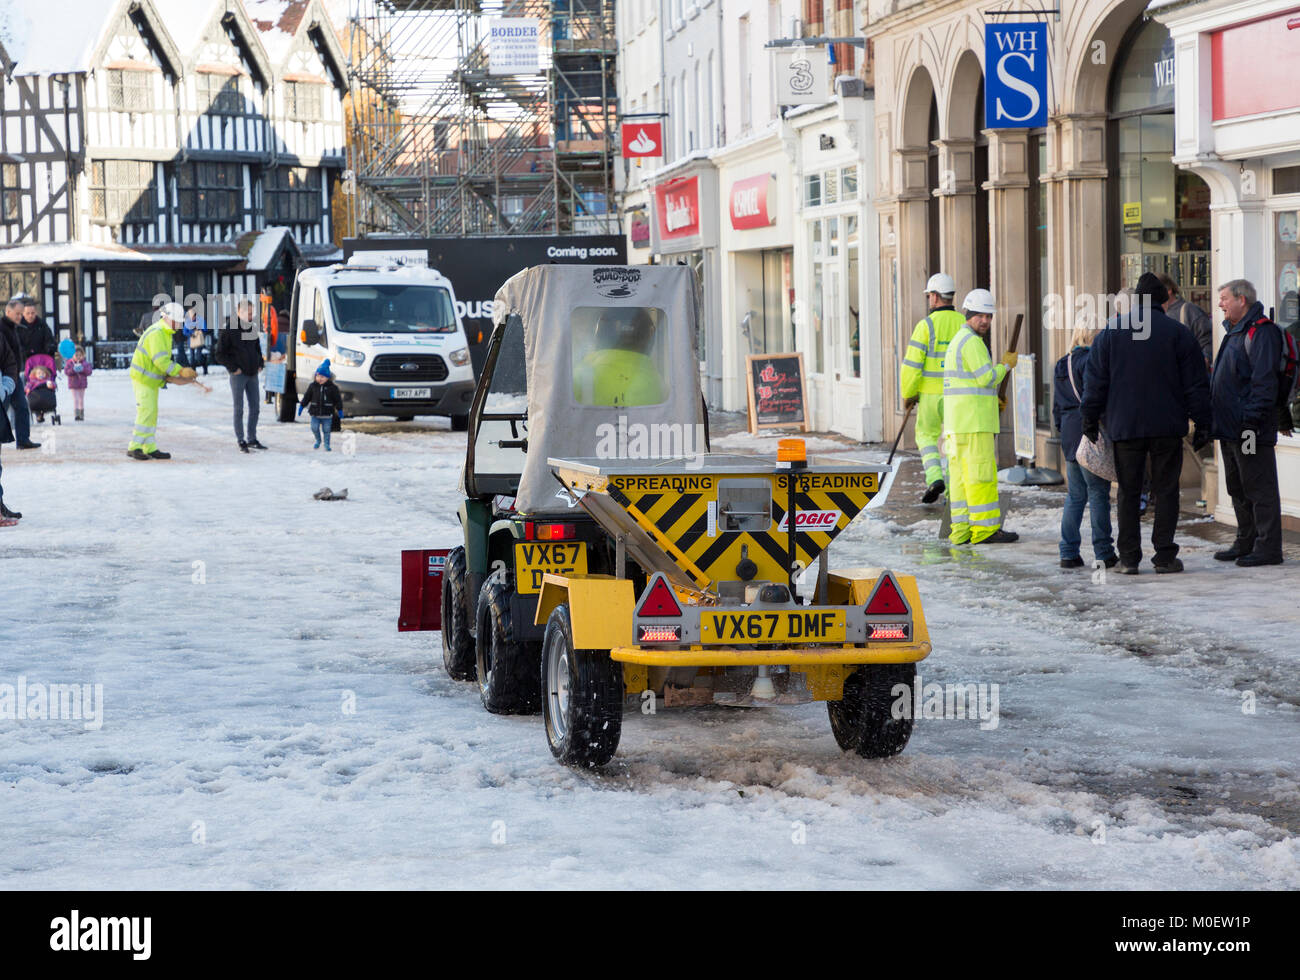 Mini slat spreader and workmen clearing snow from shopping centre street, Hereford, UK - Stock Image